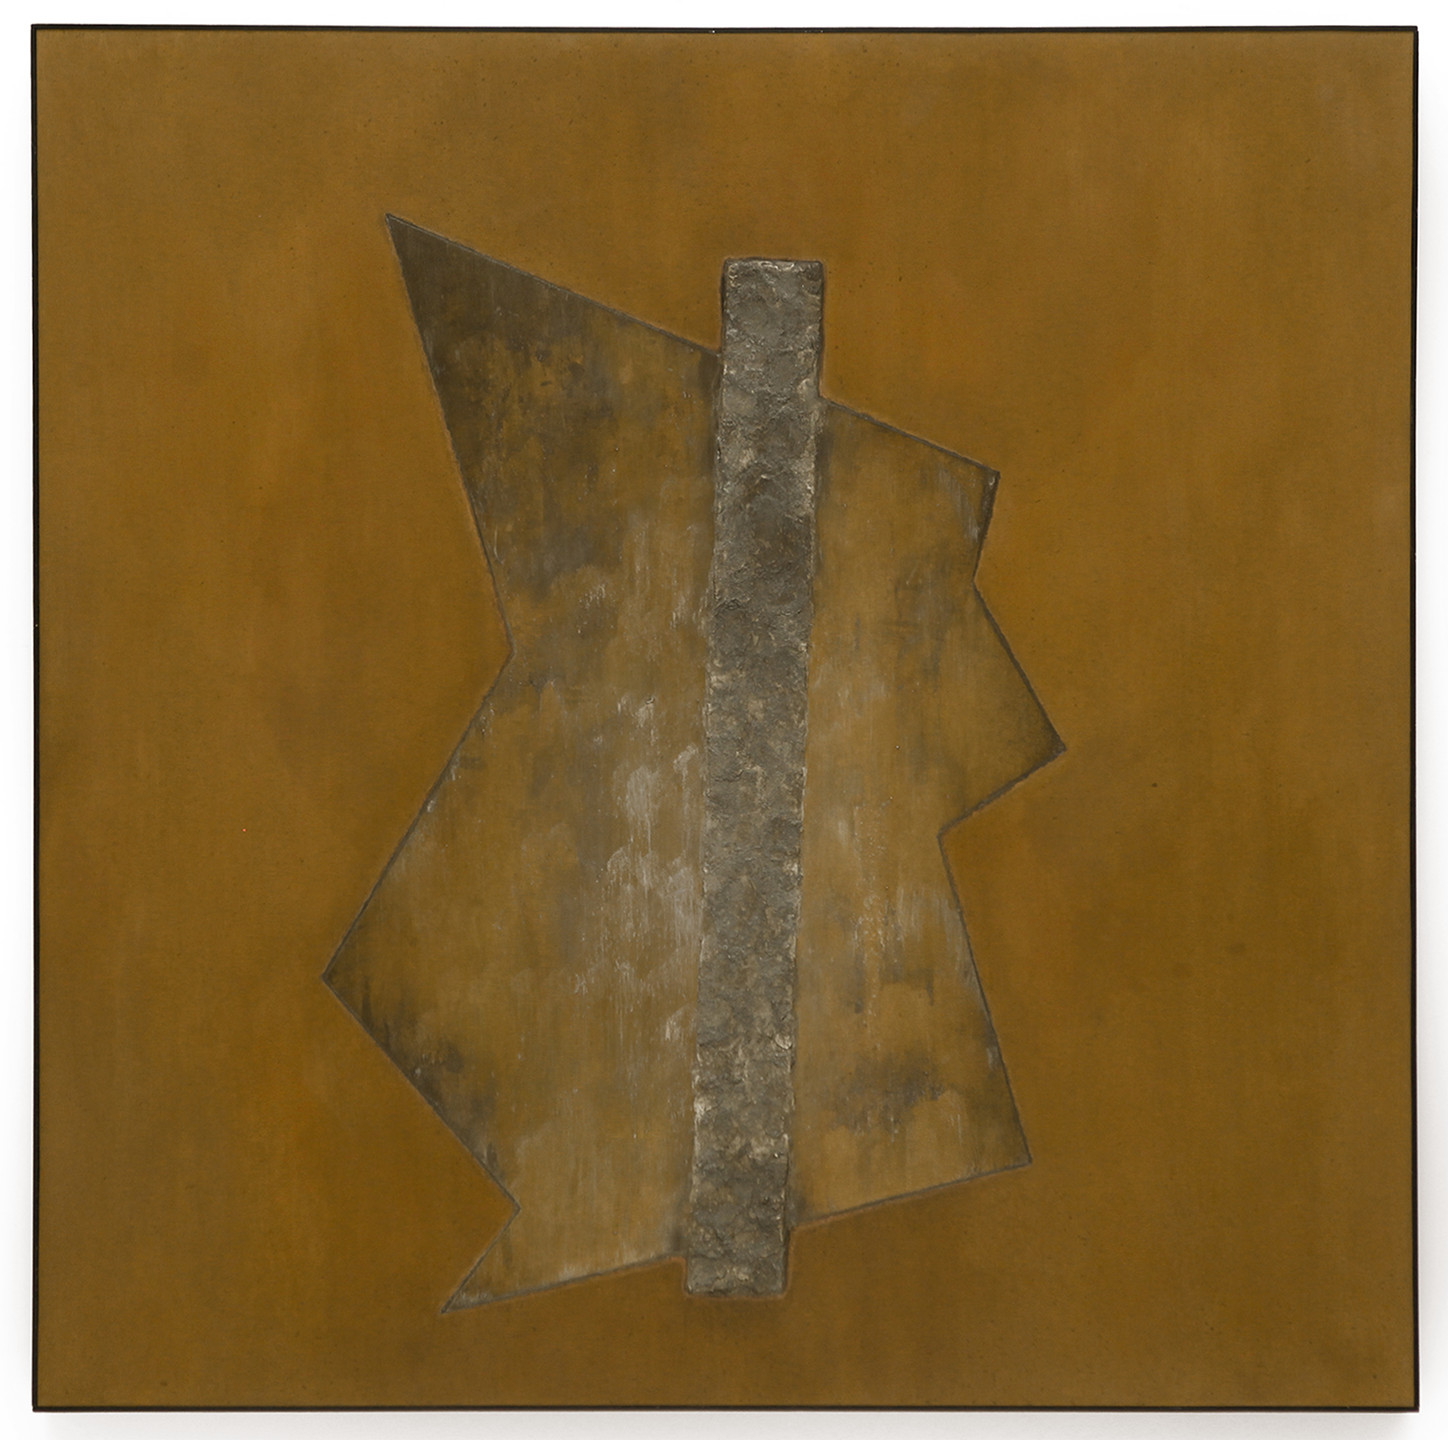 "Divergent Harmonies No. 1 , April 2015, copper, tin, pine, plywood, aluminum, 36 7/16""h x 36 3/16""w x 2""d  AVAILABLE"